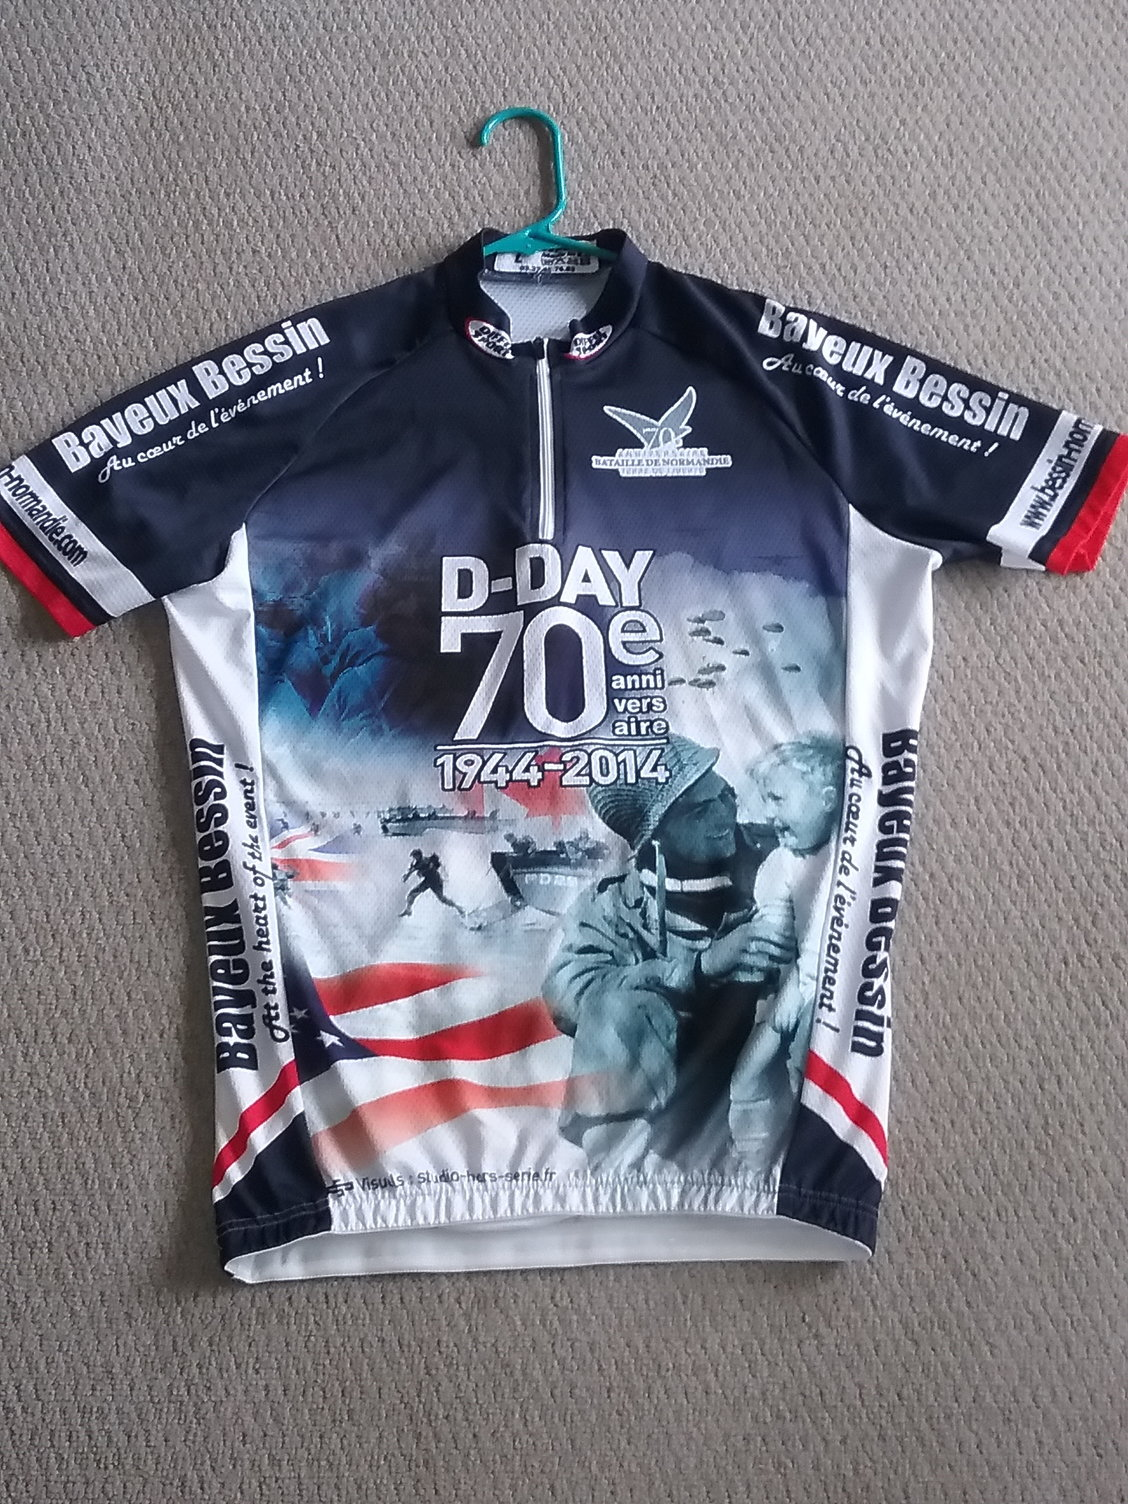 22f6acf31 Lemme see your new jersey! - Bike Forums